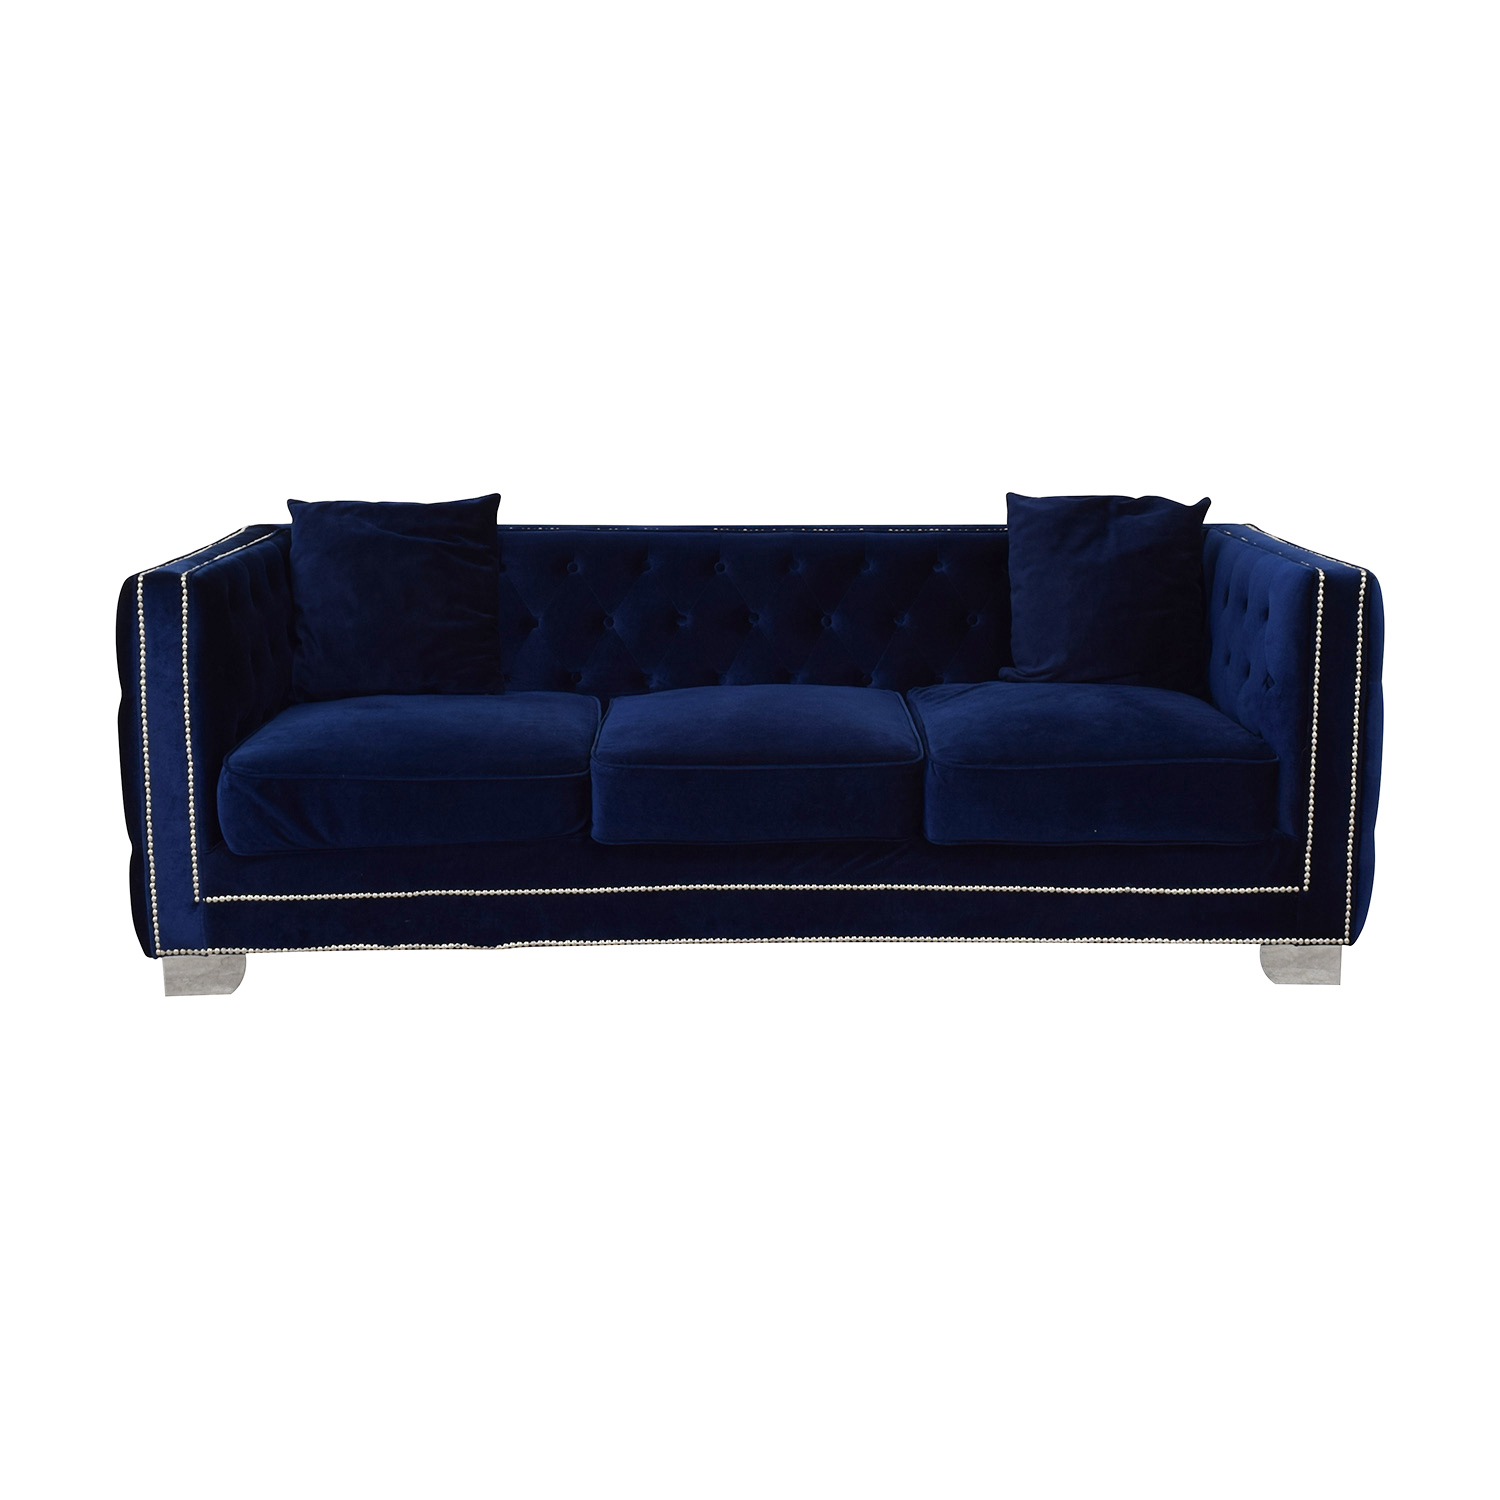 buy Ashley Furniture Blue Nailhead Three-Cushion Sofa Ashley Furniture